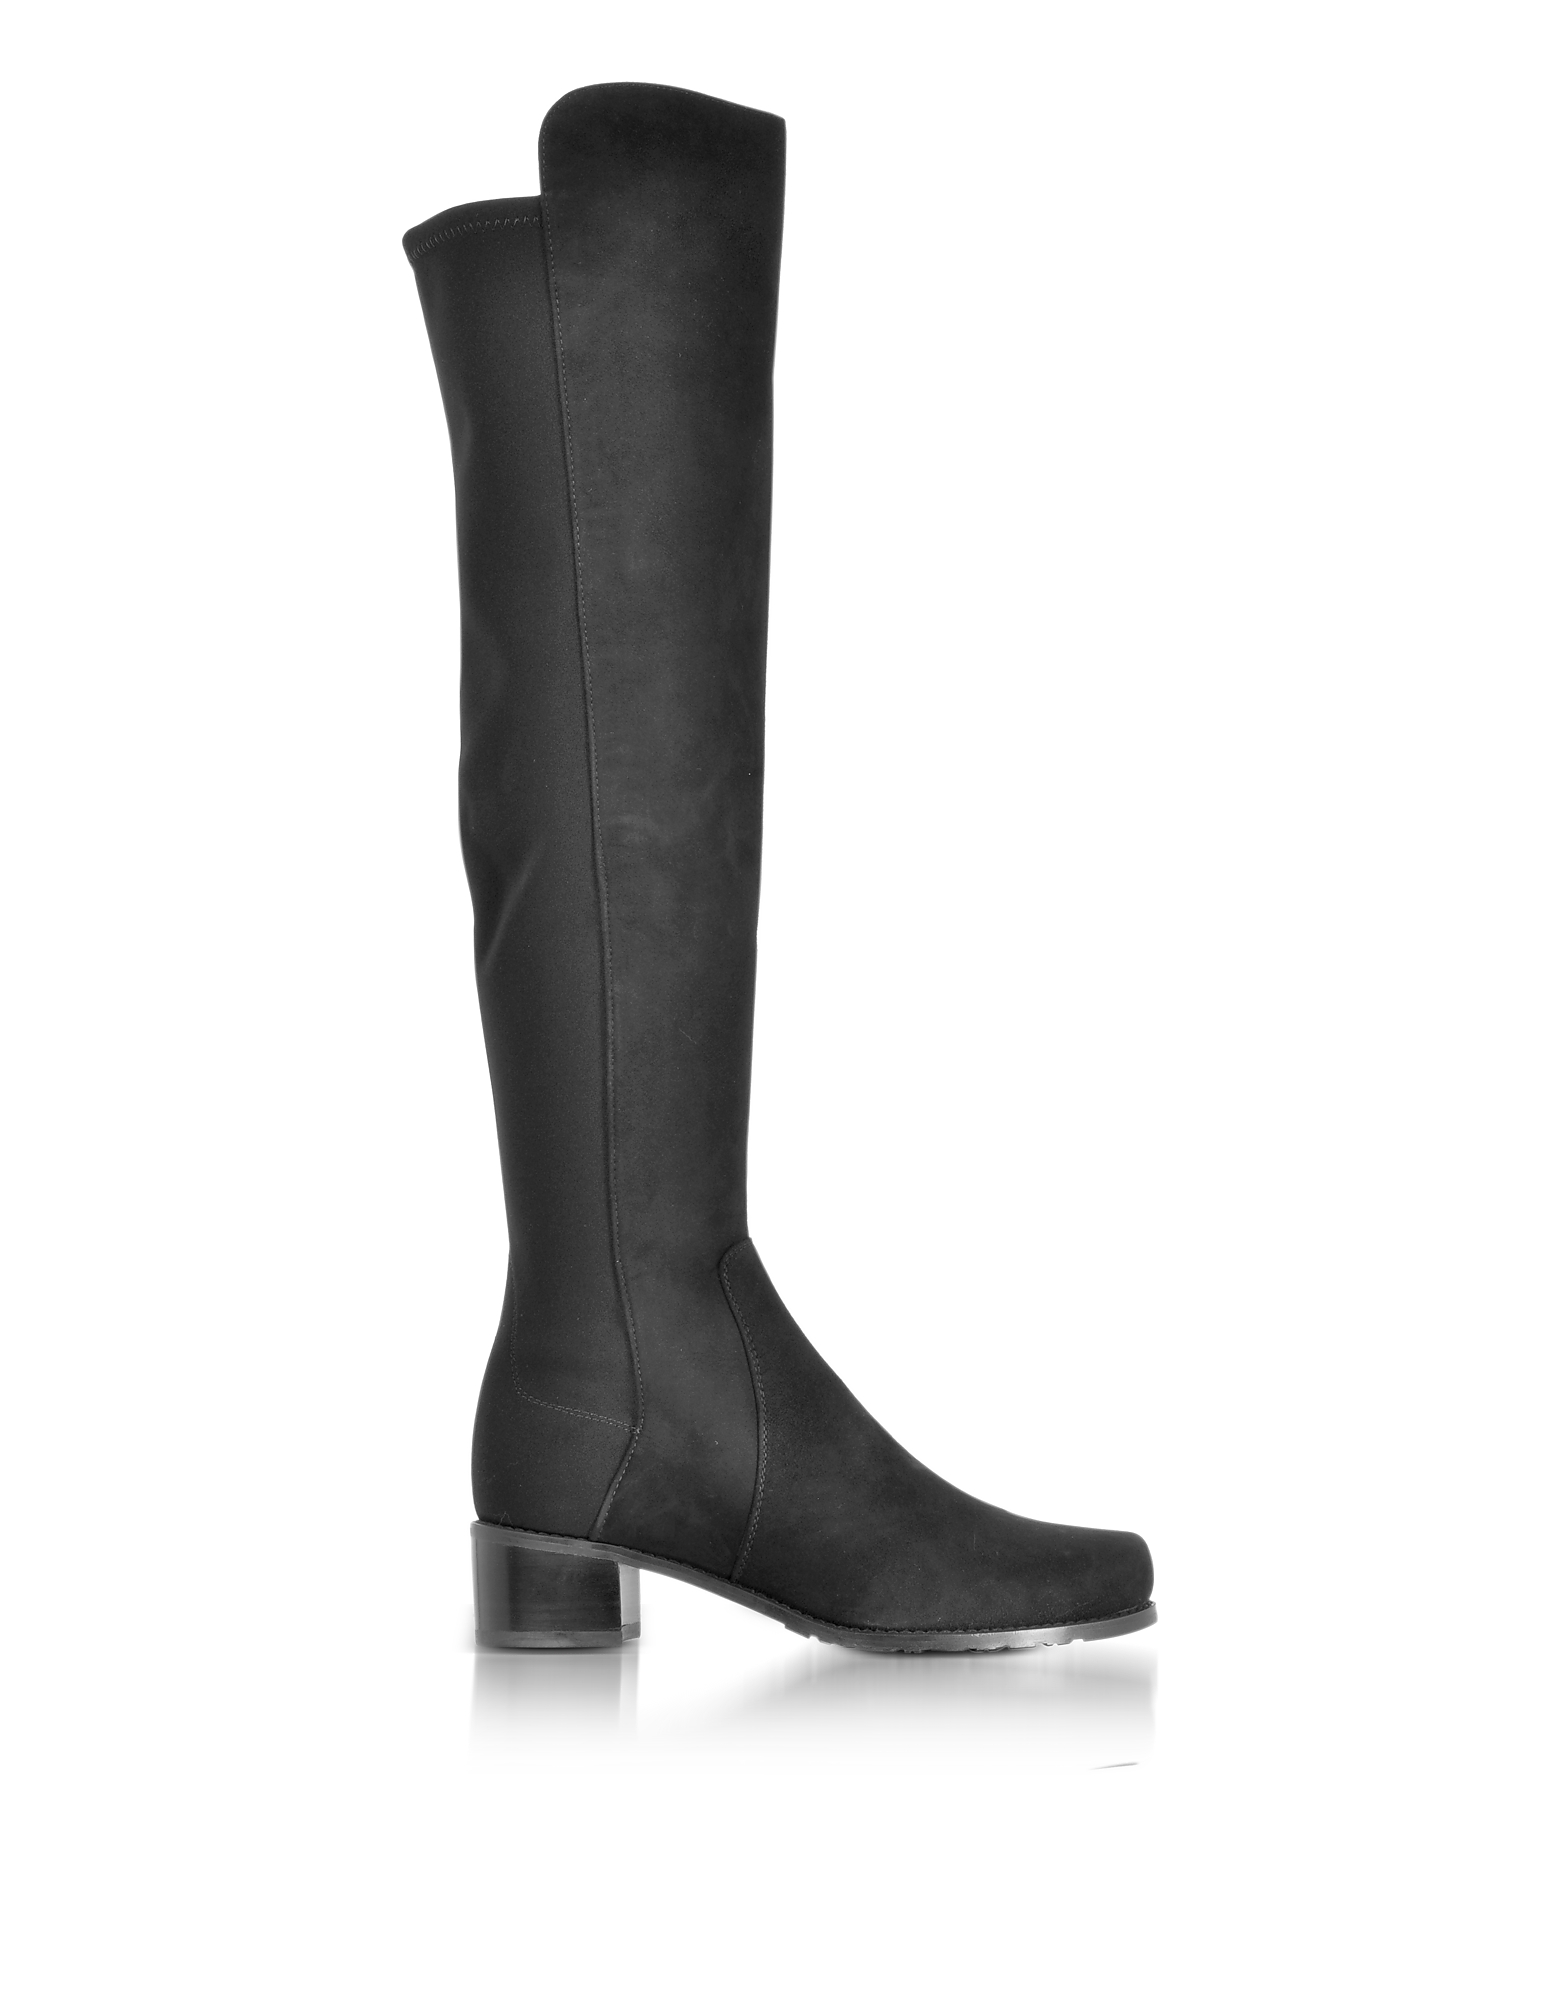 Stuart Weitzman Shoes, Reserve Black Suede and Micro Stretch Fabric Over The Knee Boots